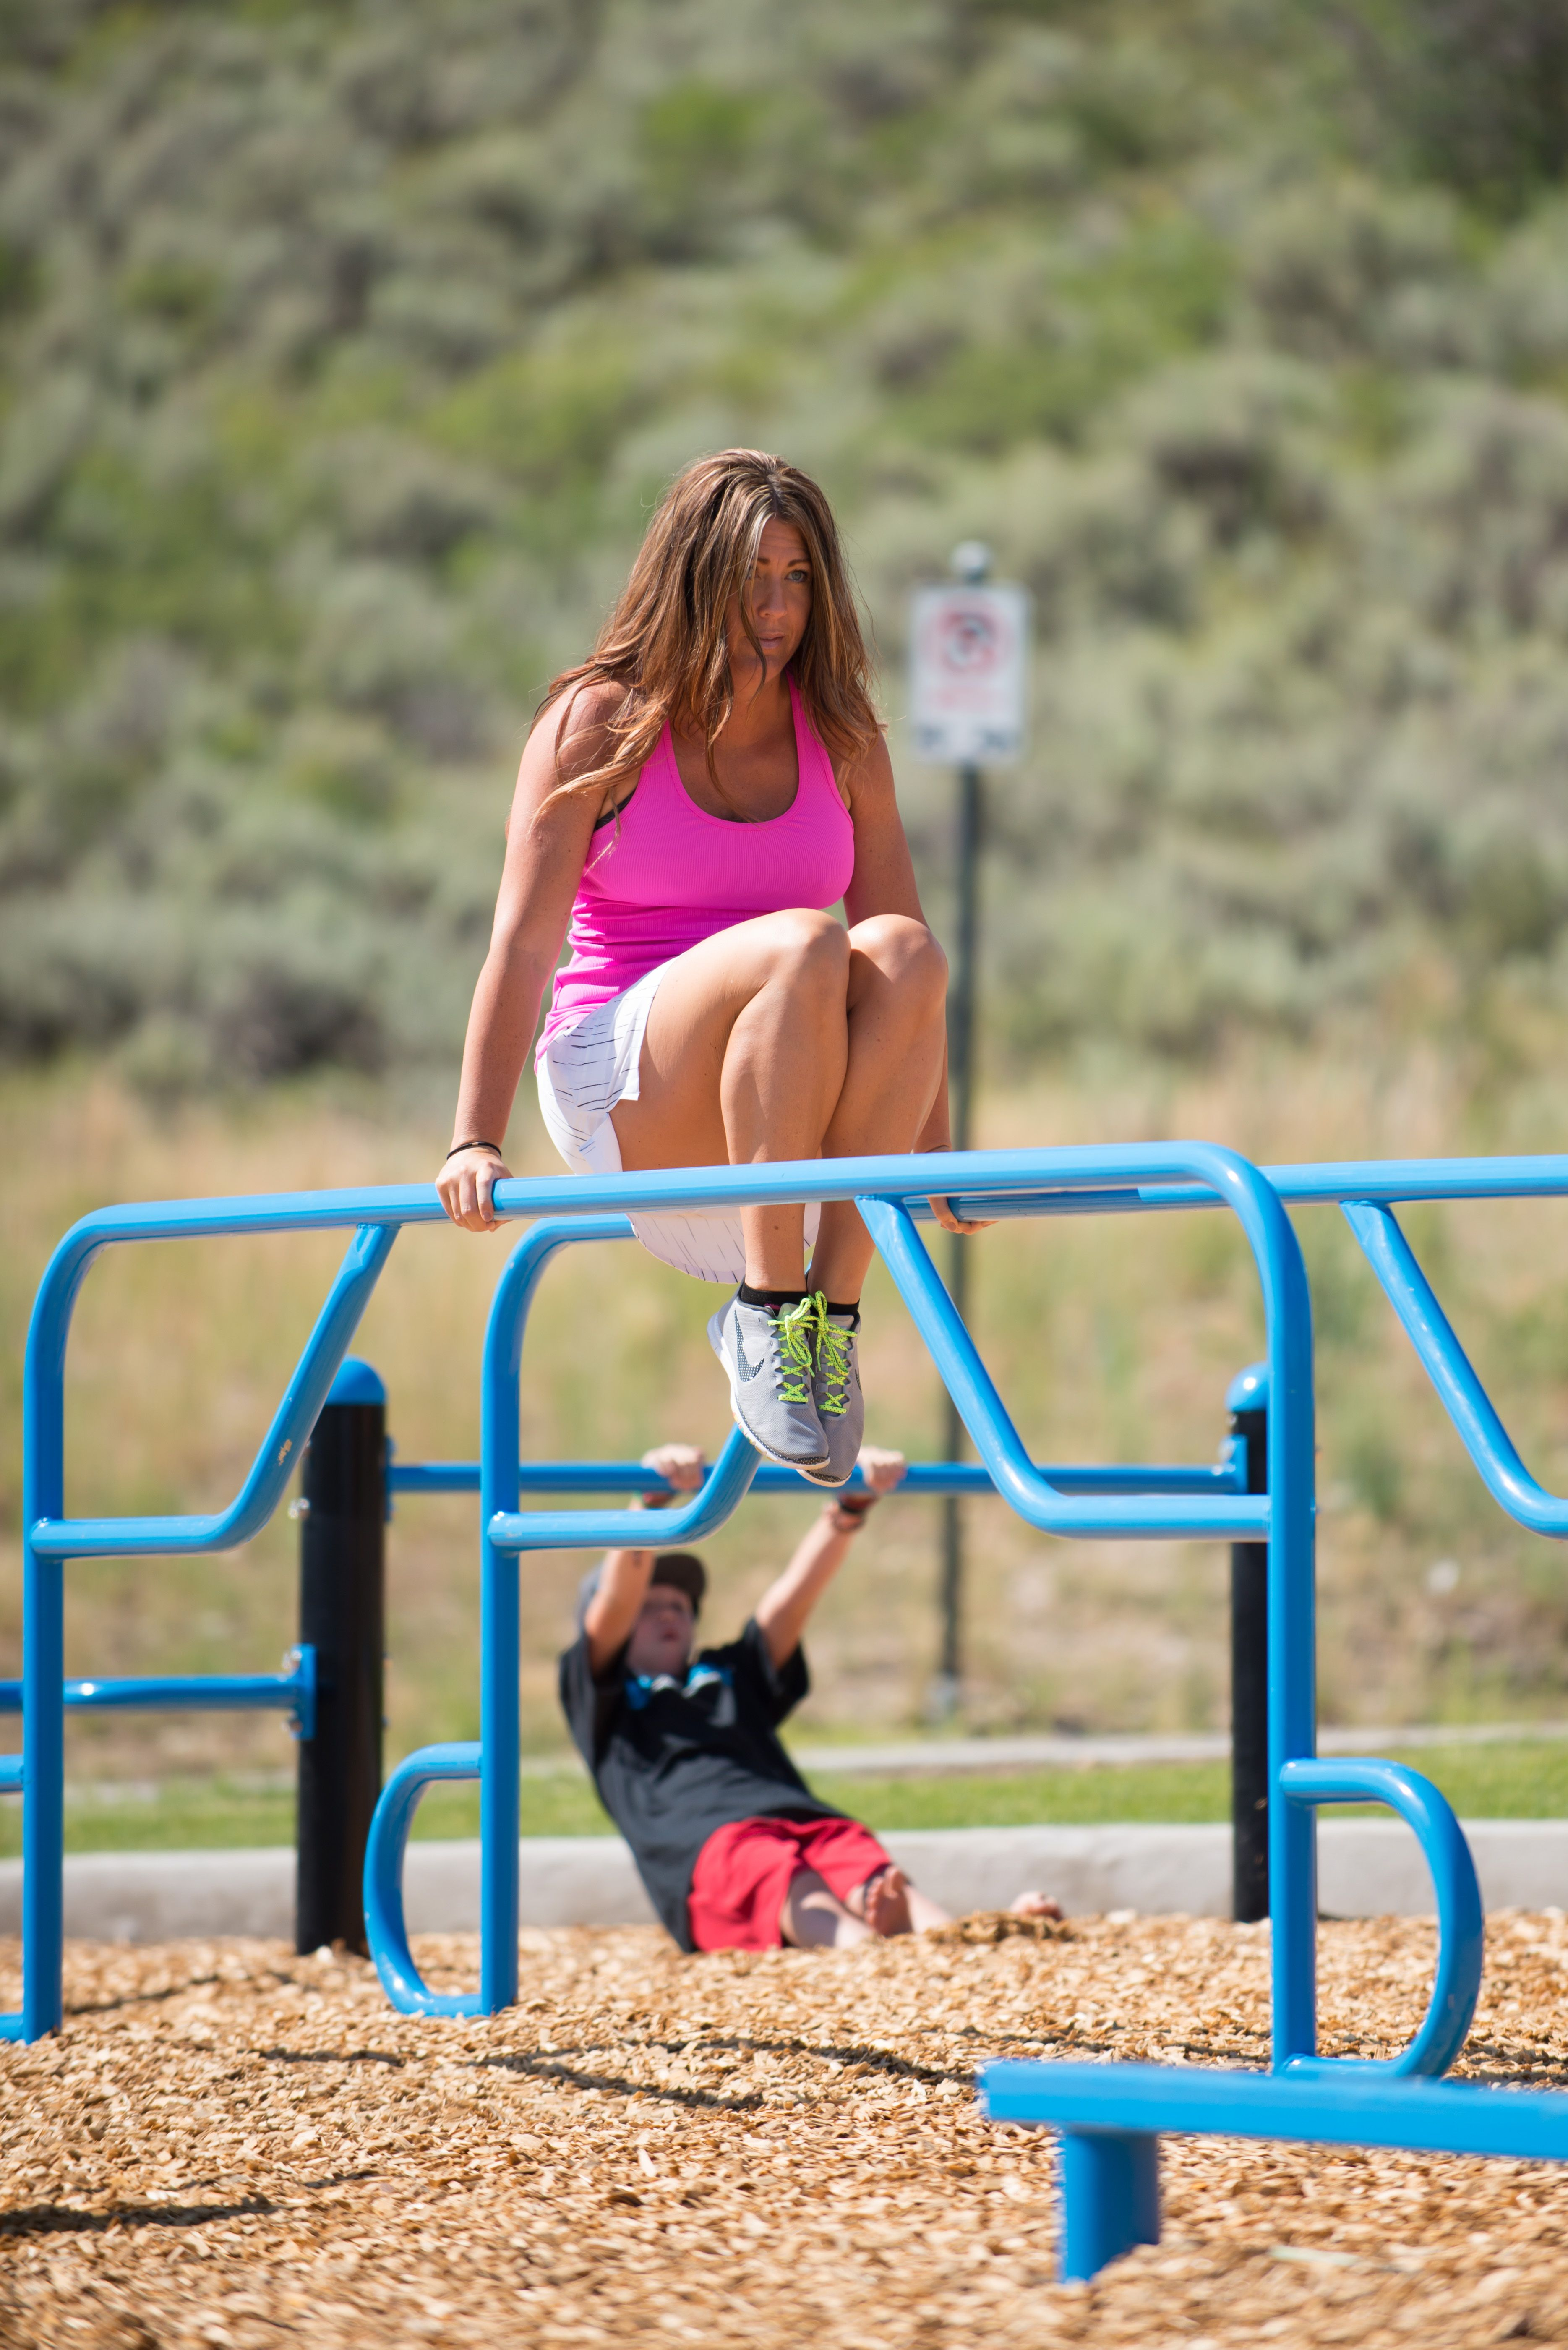 Elite parallel bars provide for some challenging